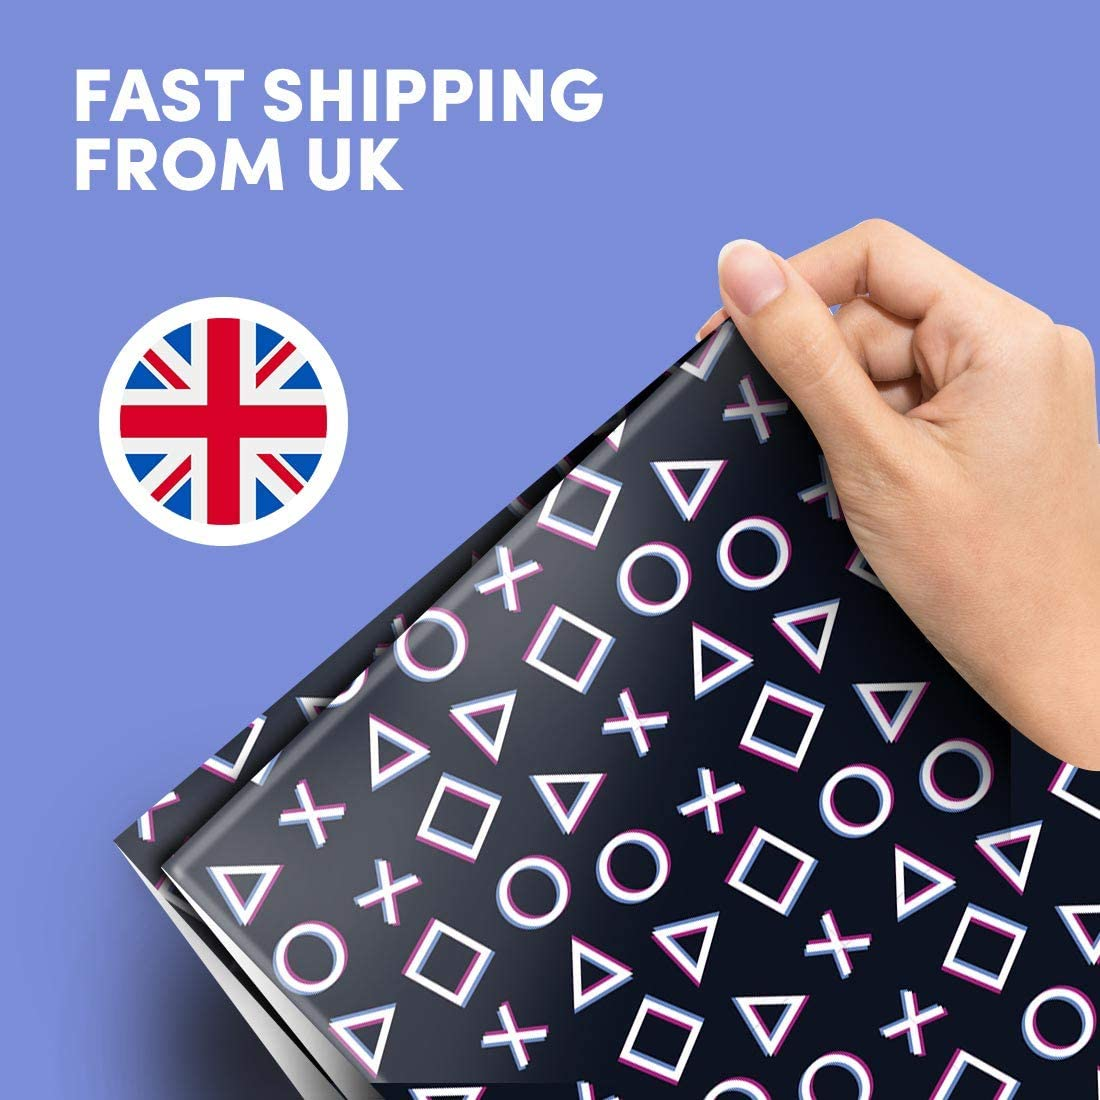 Buy 20 x Wrapping 20x20cm Paper Eco Printed   20D Style Computer ...